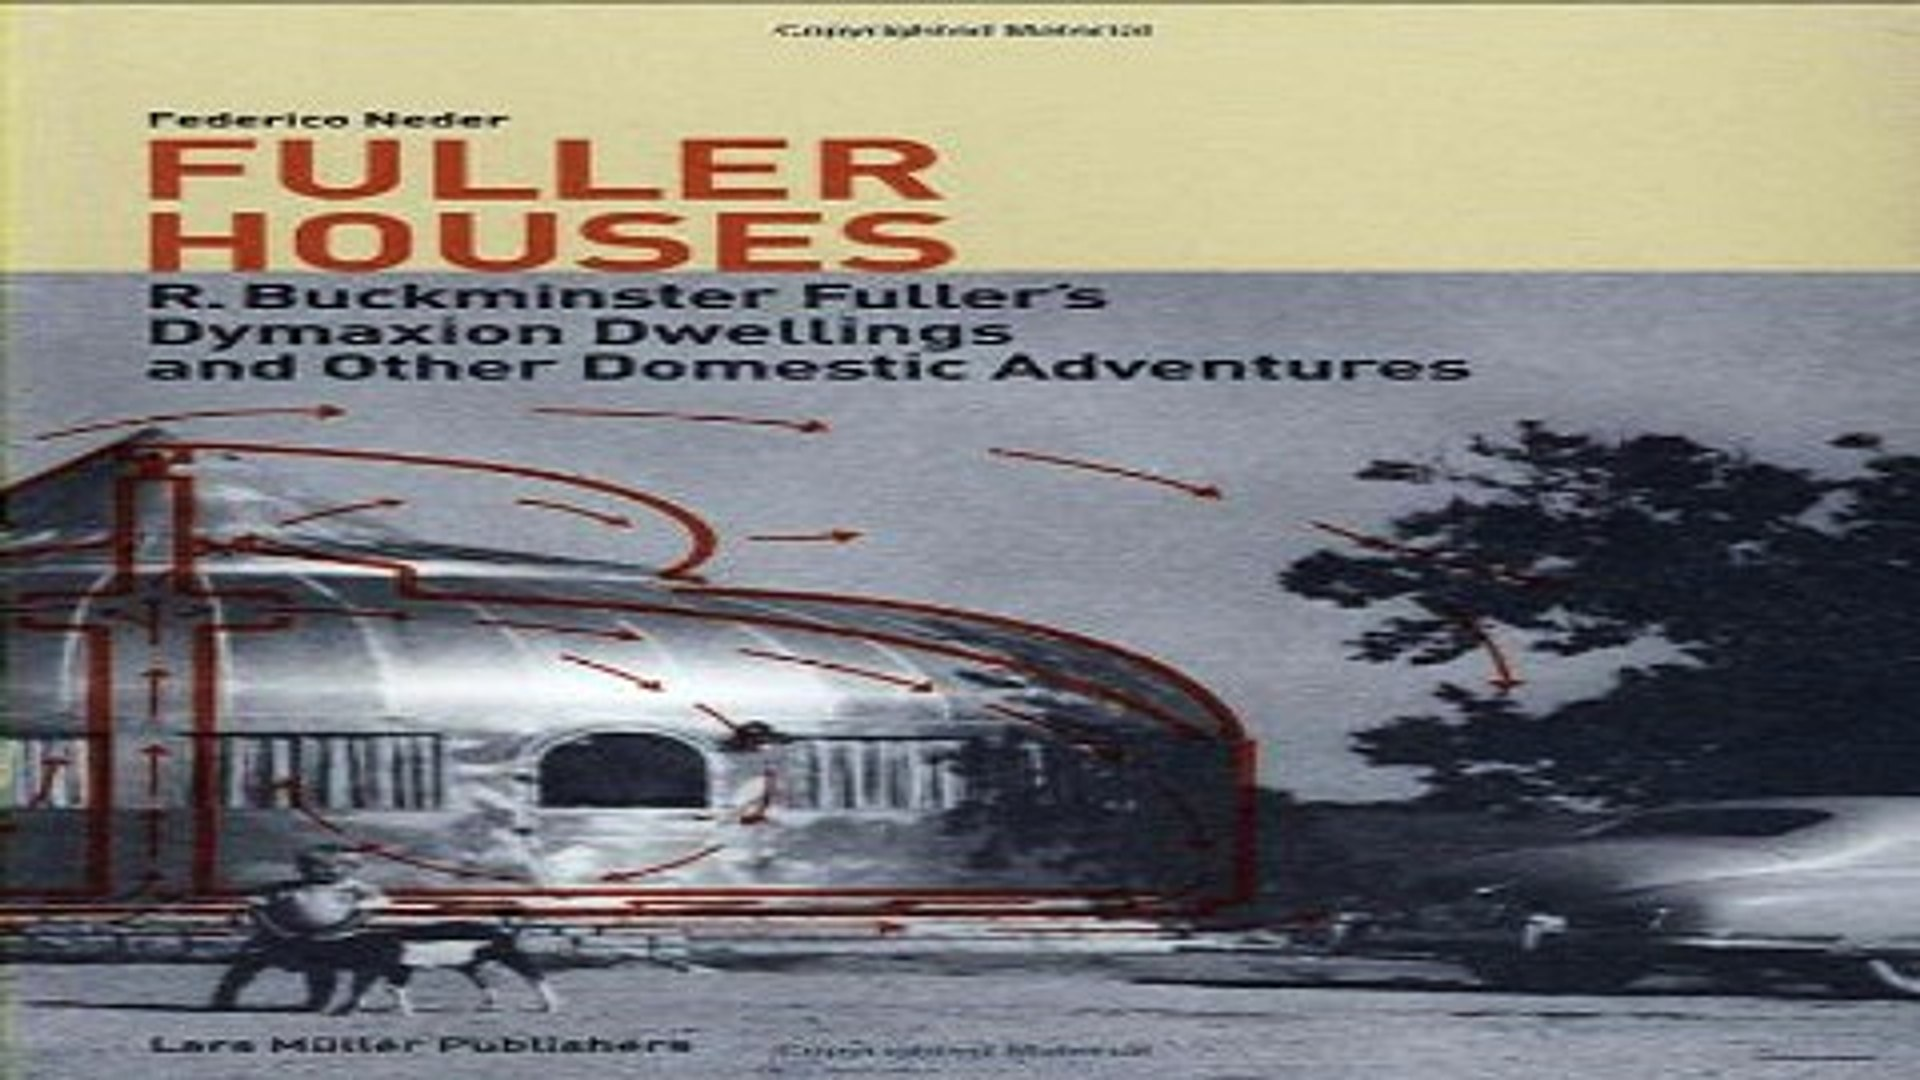 Read Fuller Houses  R  Buckminster Fuller s Dymaxion Dwellings and Other Domestic Adventures Ebook